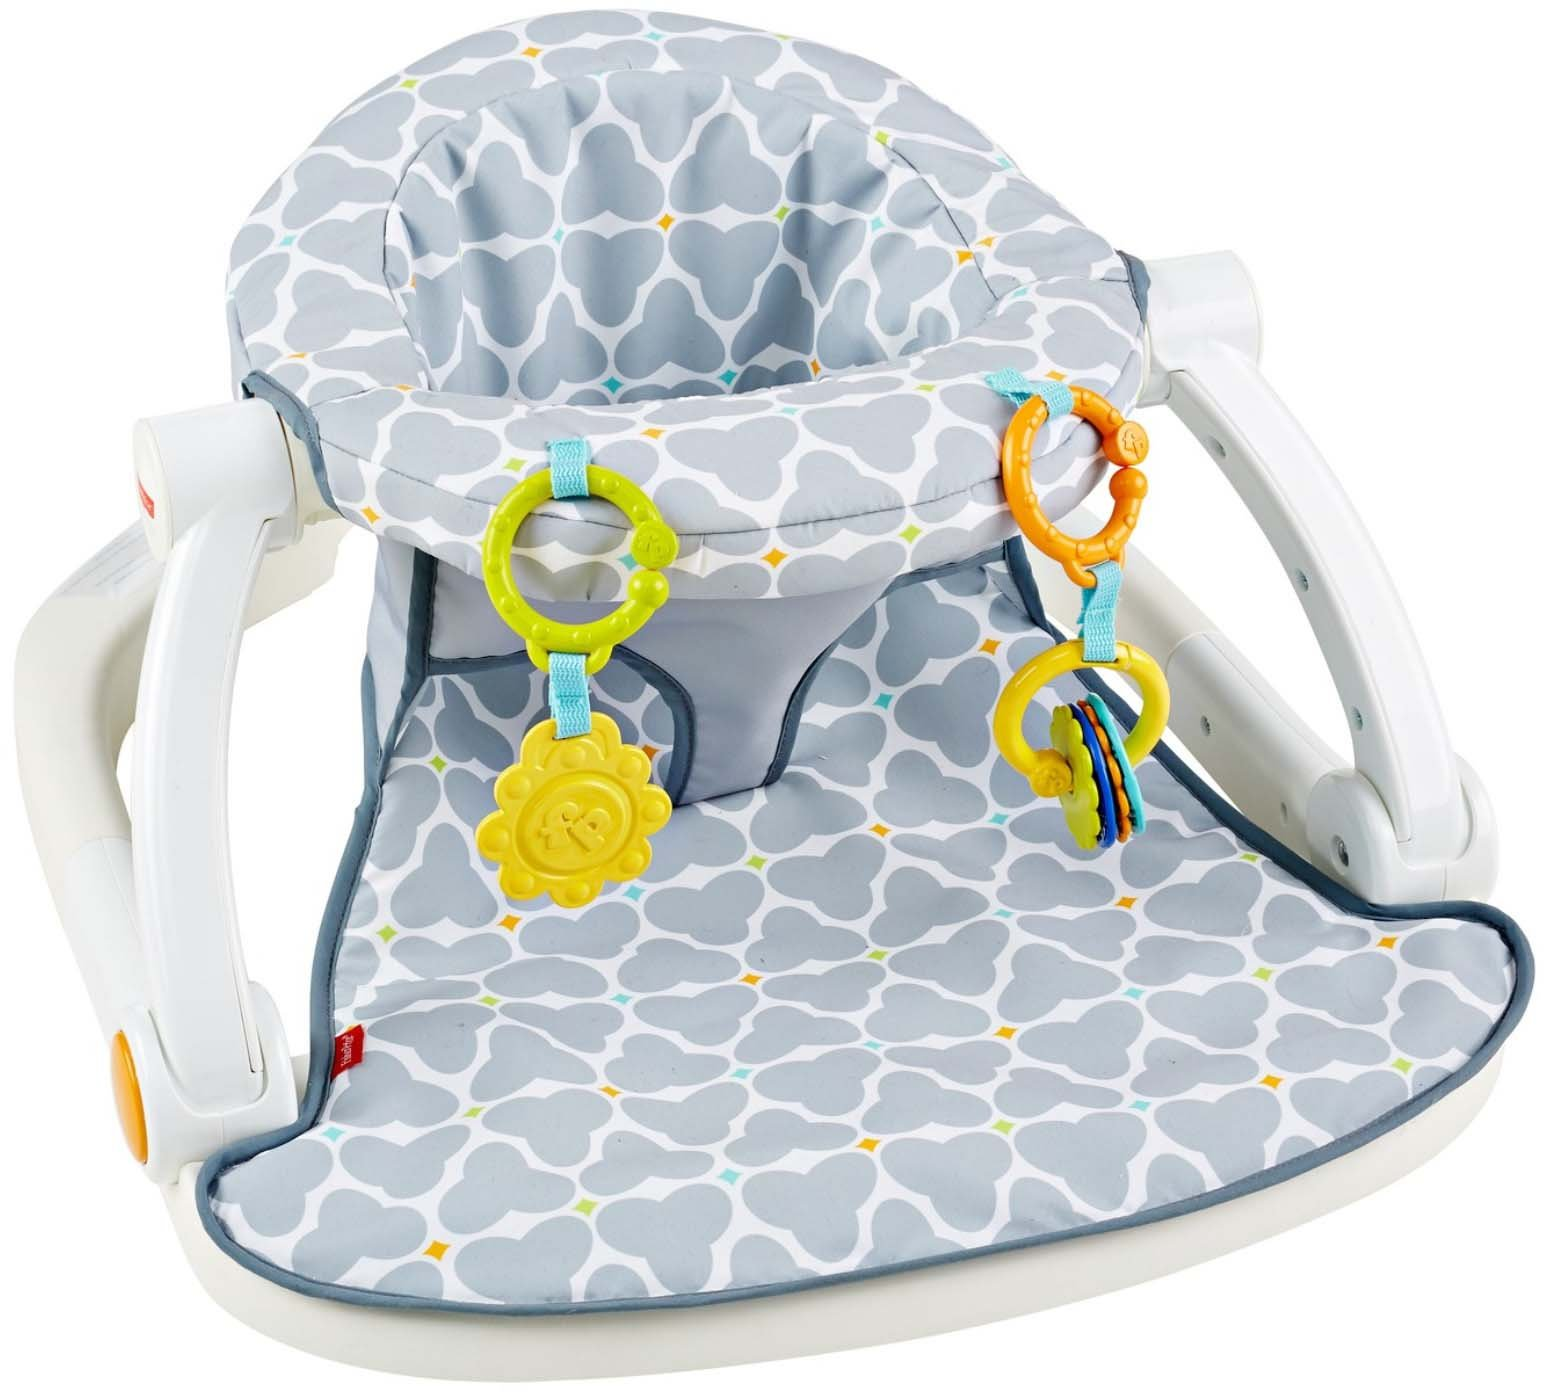 Fisher-Price Sit-Me-Up Floor Seat, Silver Platter